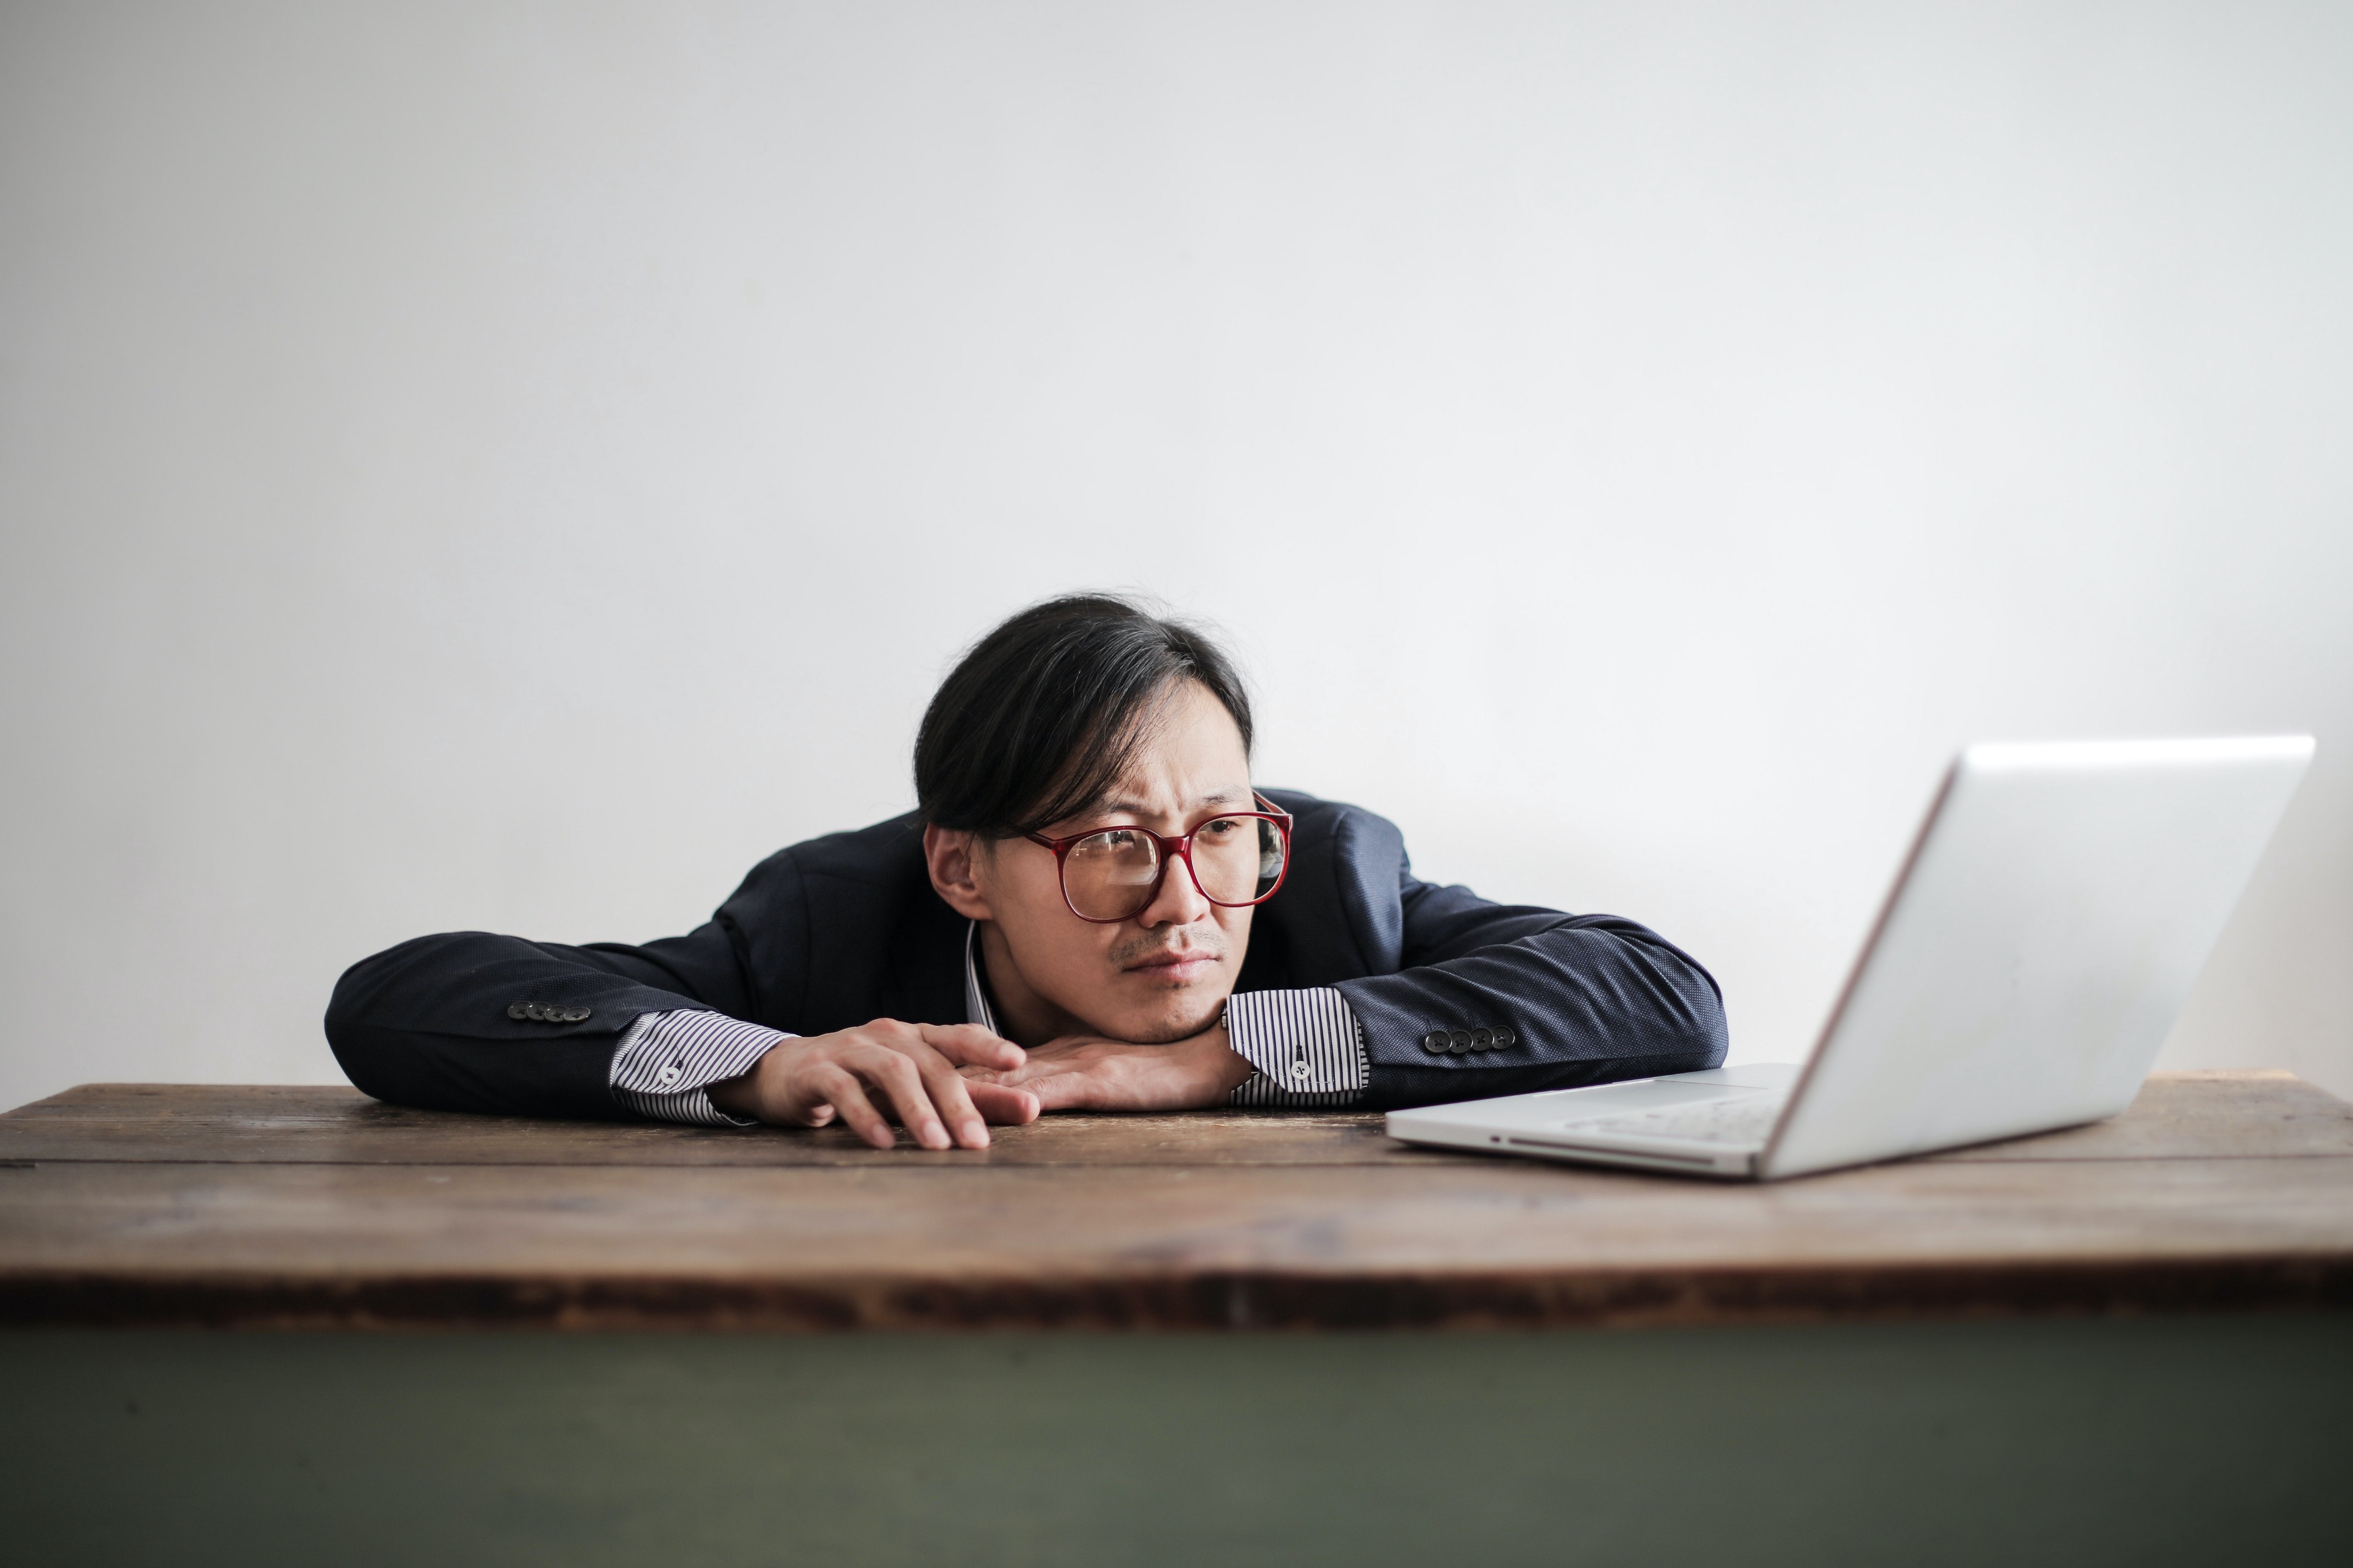 A man dressed in a blue suit wearing red glasses with his chin on his wrists, staring defeatedly at an open laptop.